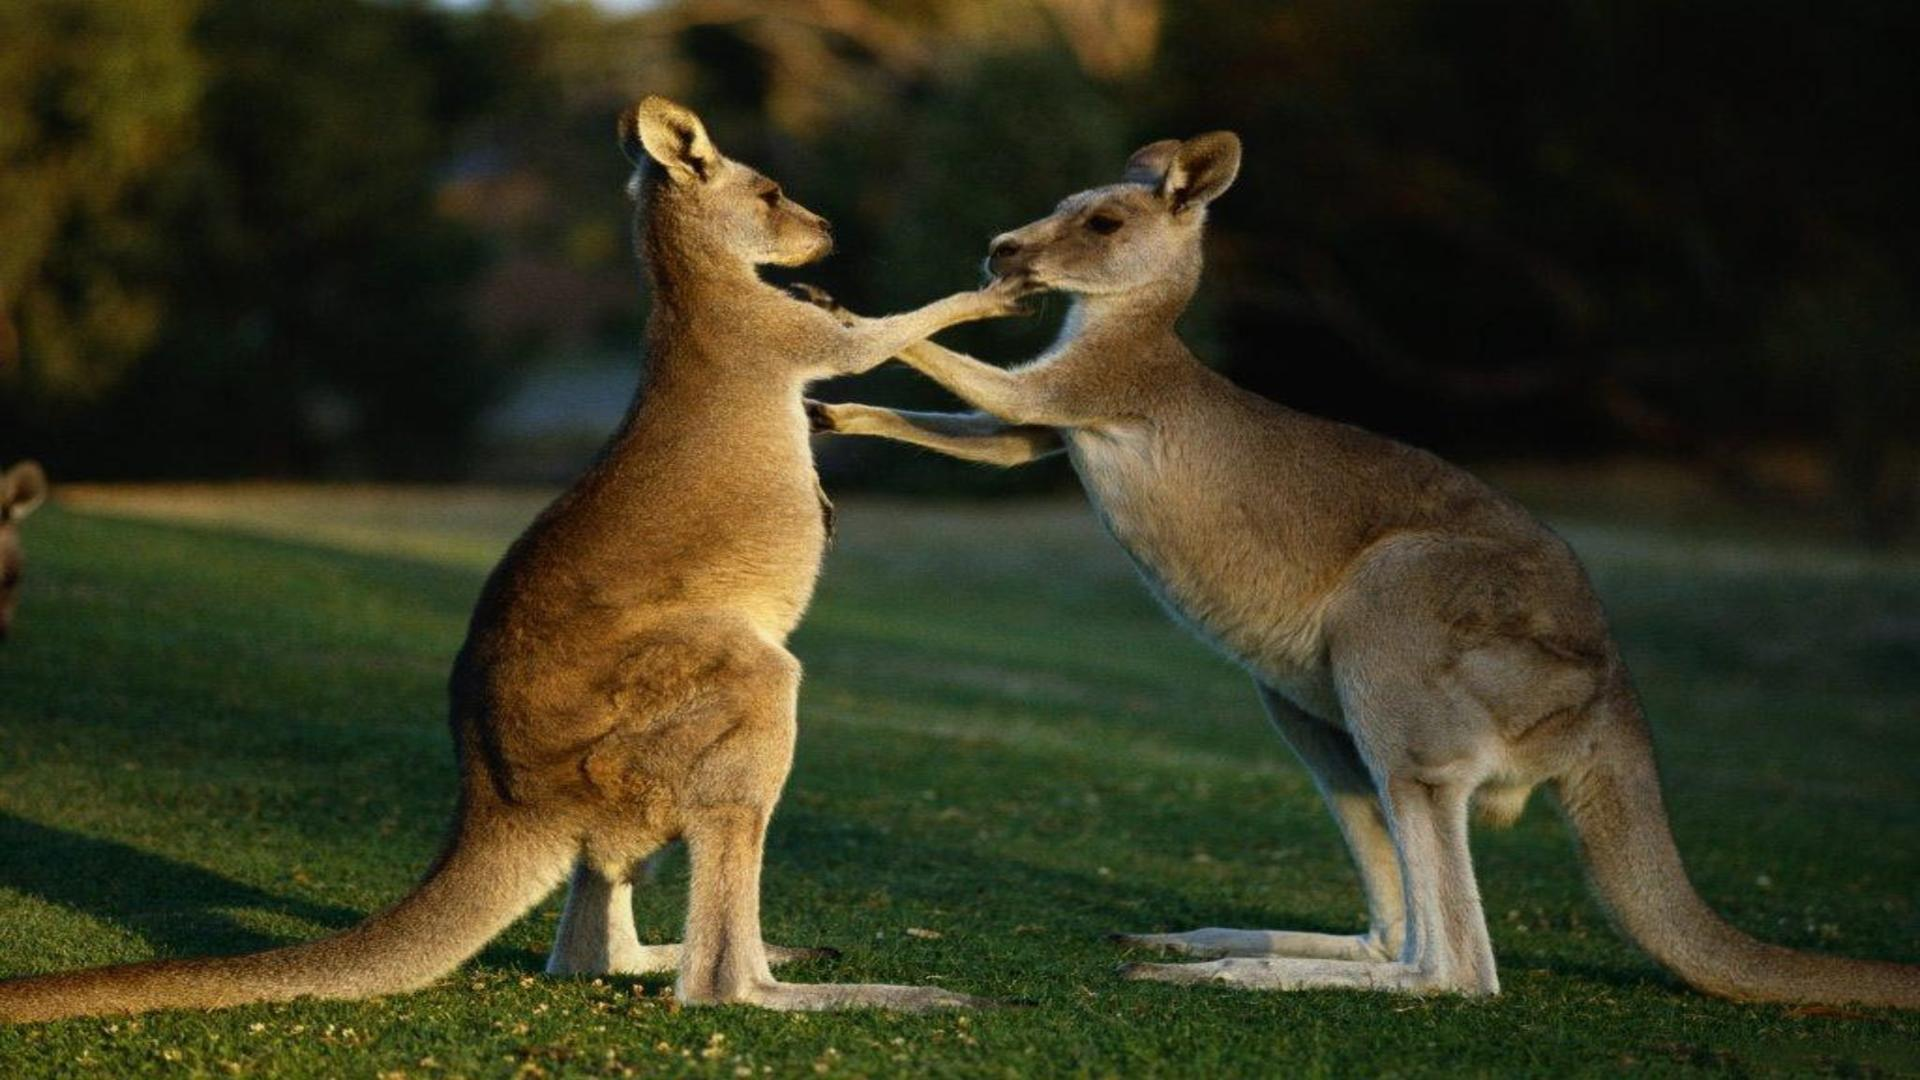 Kangaroo High Quality Wallpapers